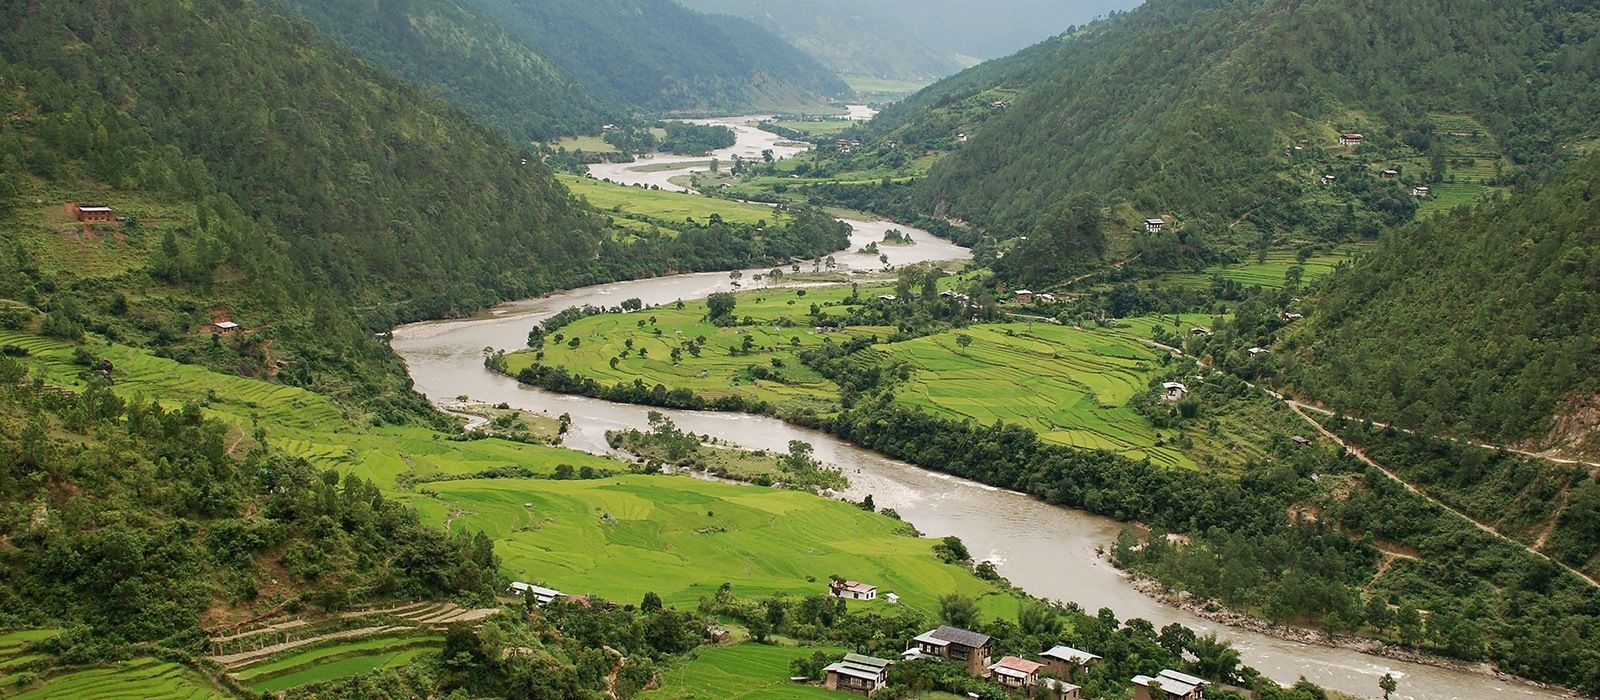 Nepal: Cultural, Scenic & Rugged Wonders Tour Trip 6